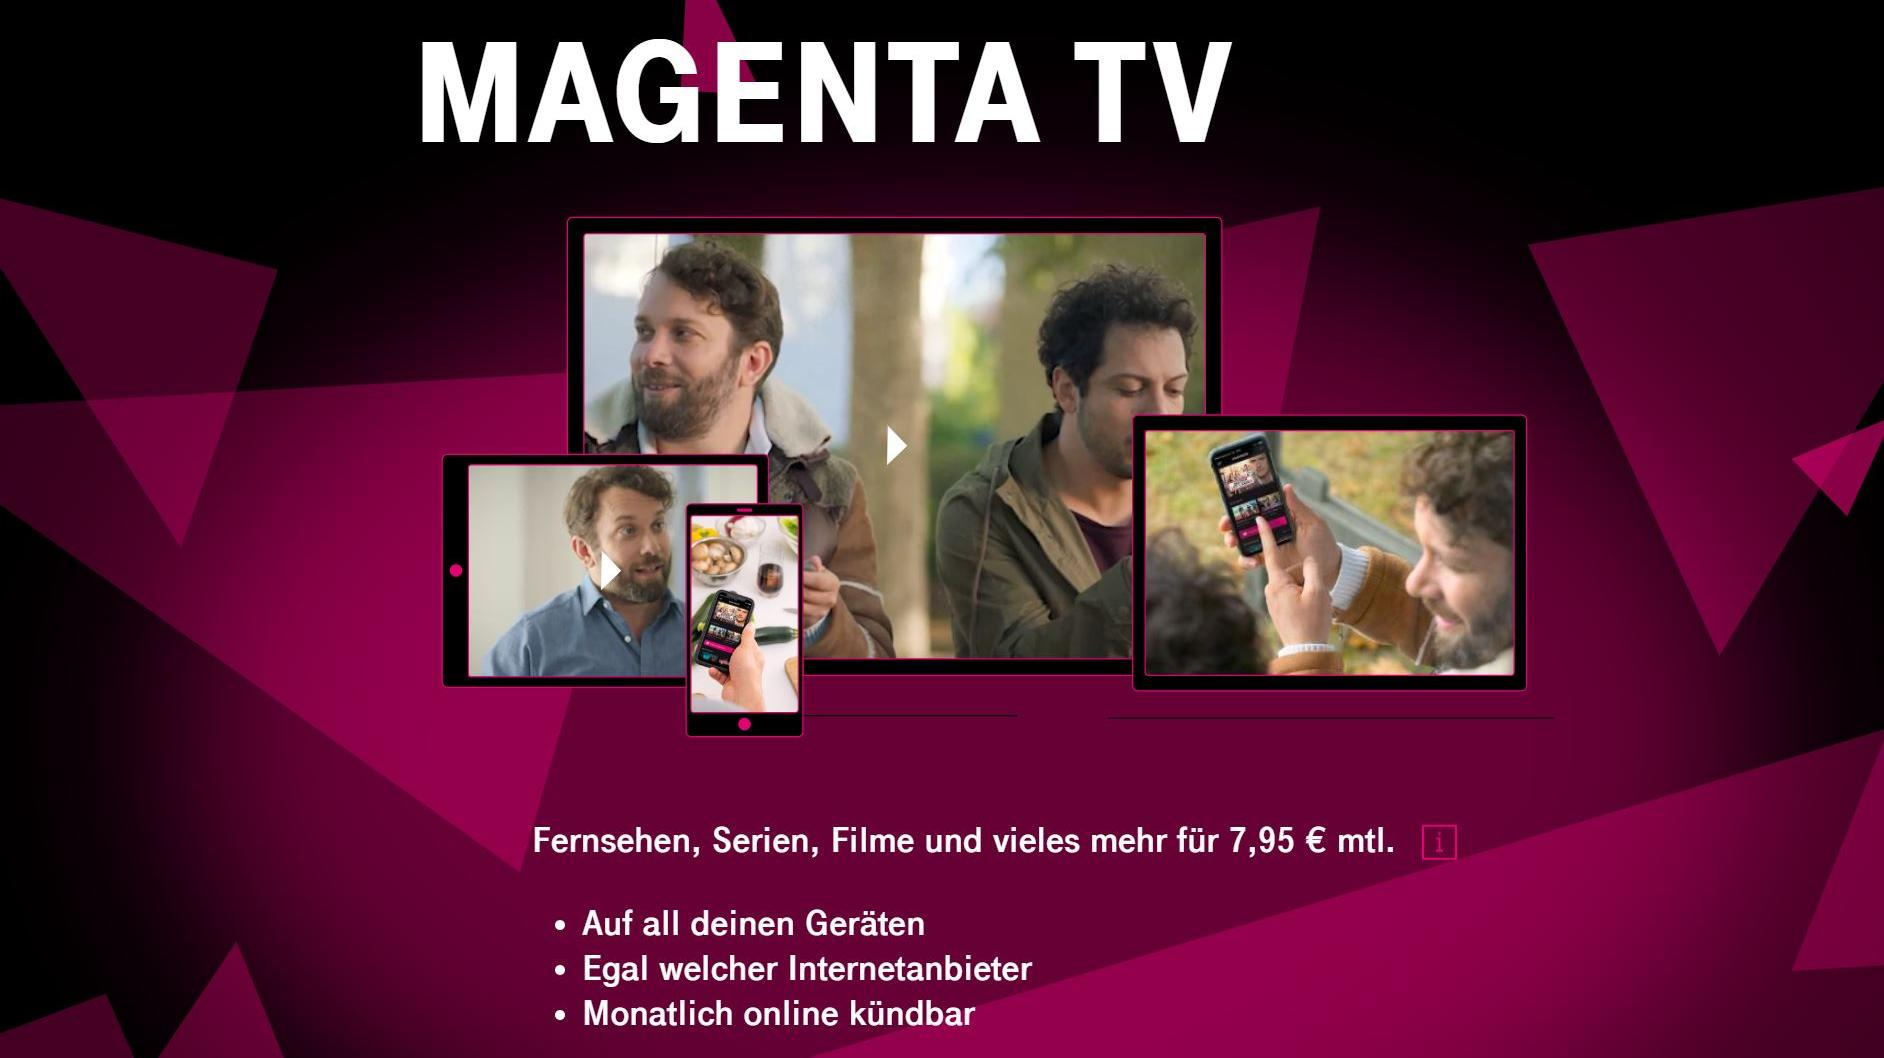 im telekom kundencenter so k ndigen sie das magentatv abo. Black Bedroom Furniture Sets. Home Design Ideas